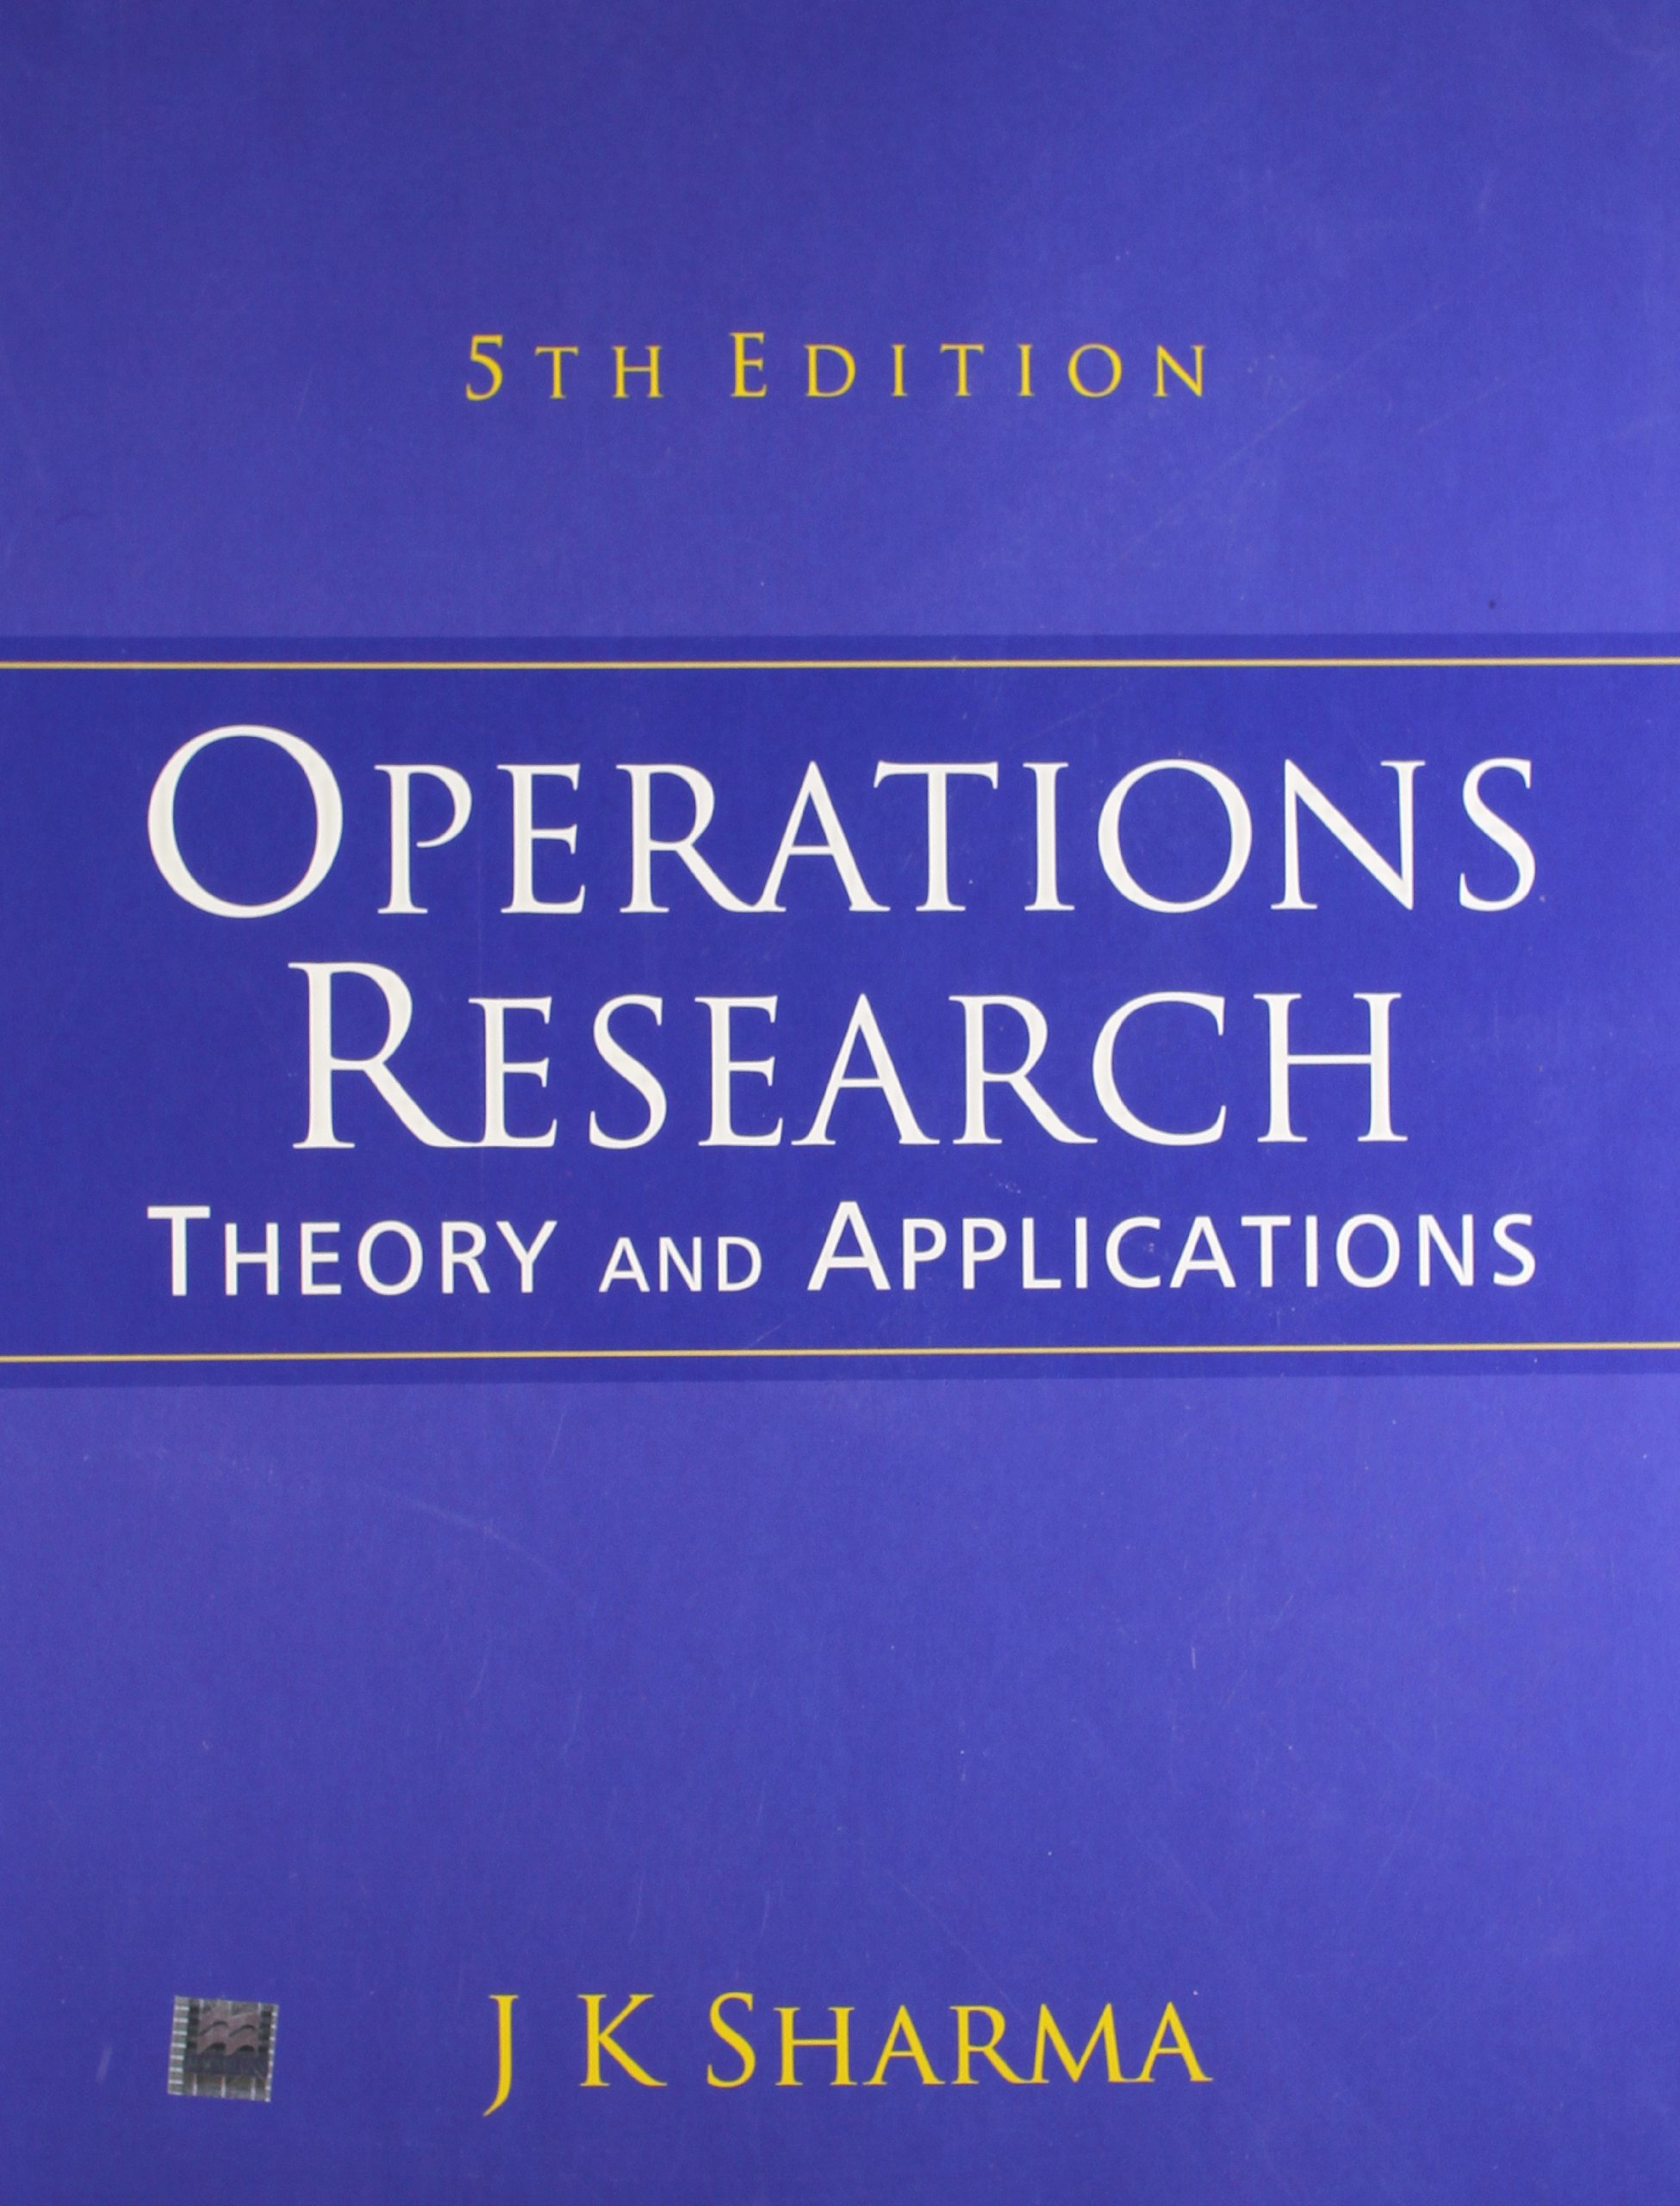 Operation Research Ebook Free Download By Jk Sharma